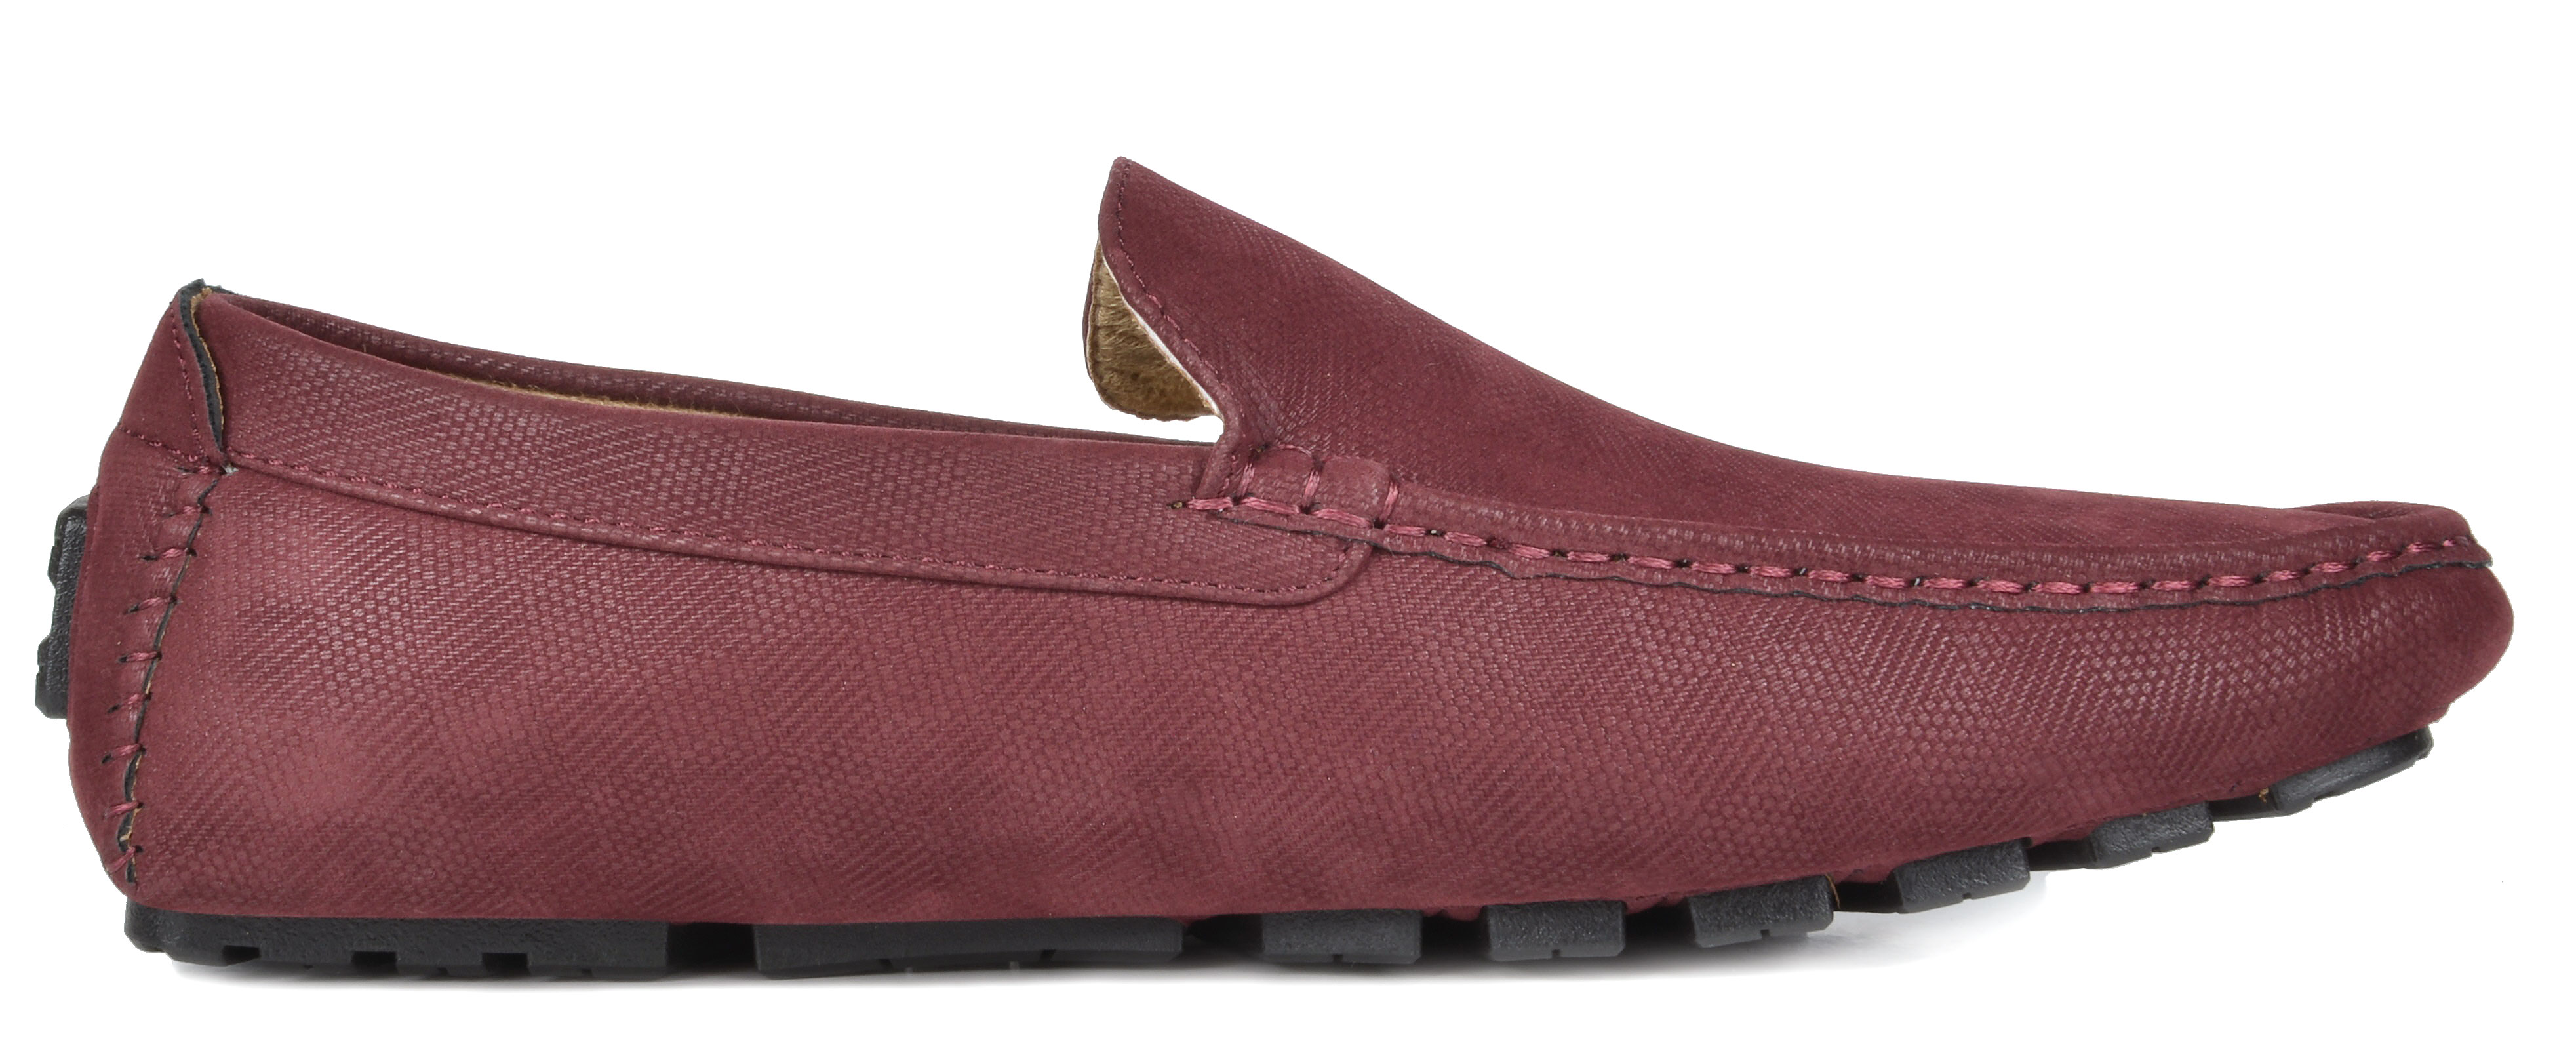 Bruno-Marc-Men-039-s-New-Classic-Fashion-Slip-on-Driving-Casual-Loafers-Boat-Shoes thumbnail 140